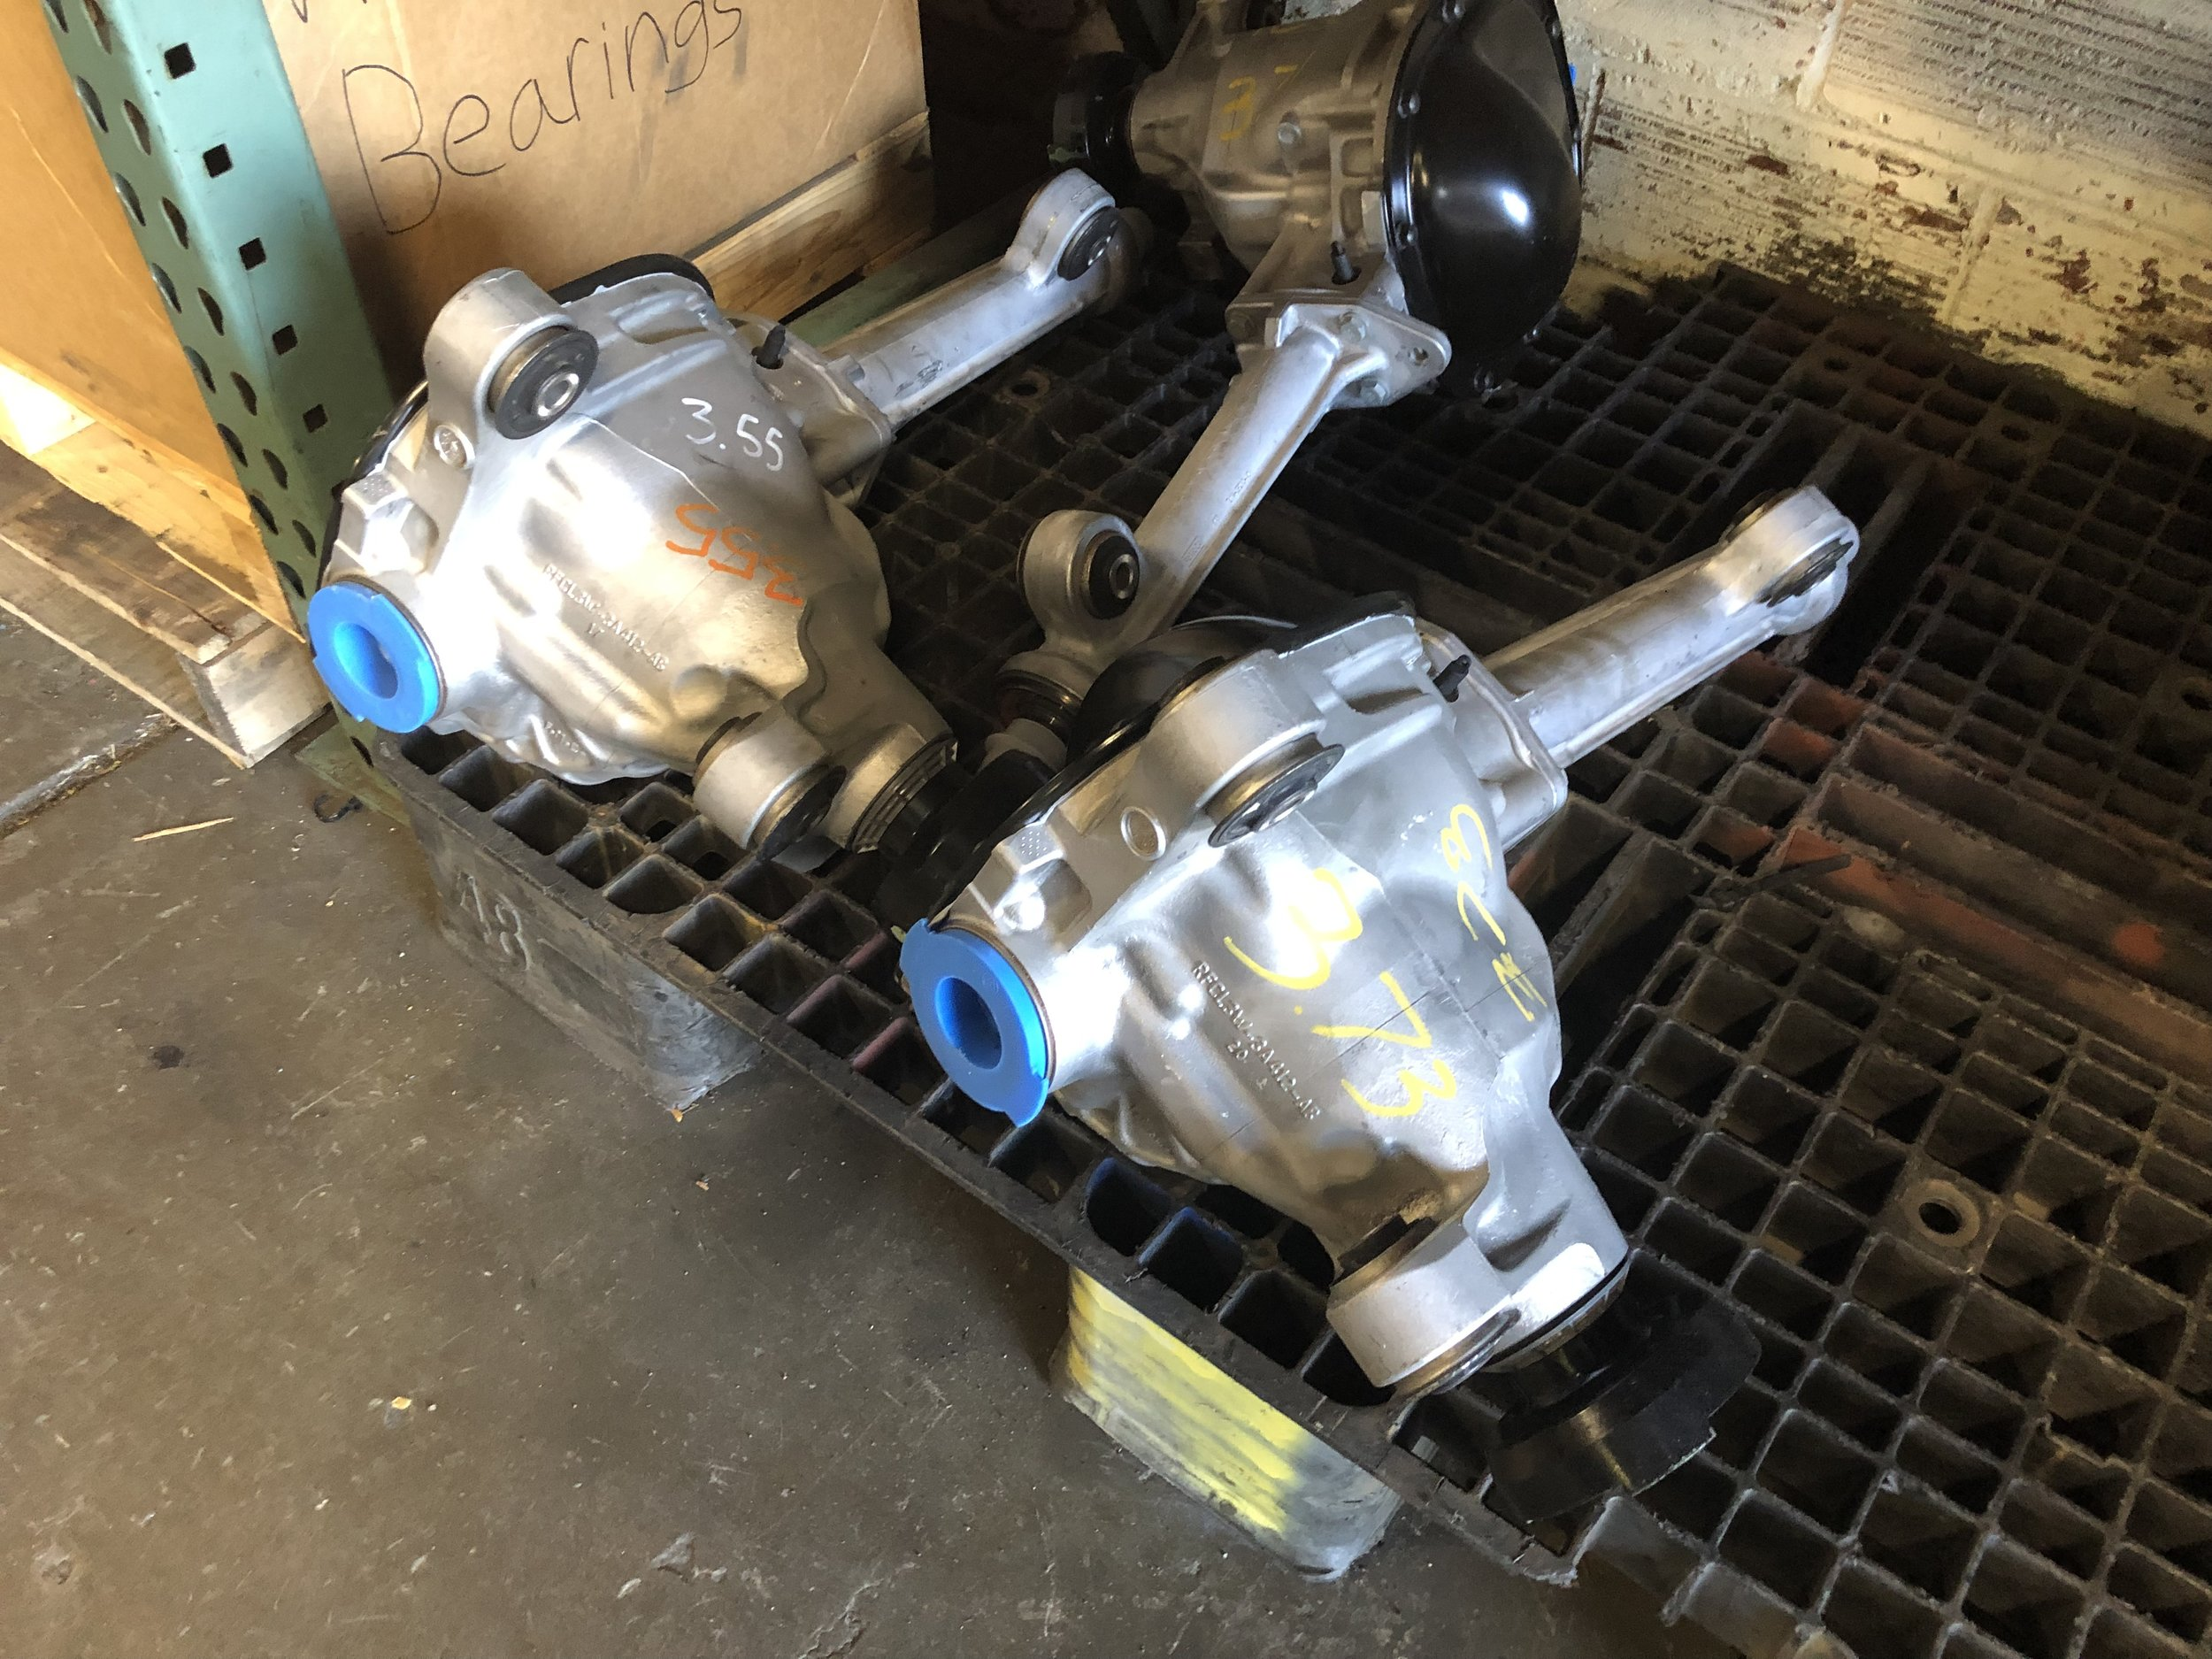 F150 front differentials waiting for installation